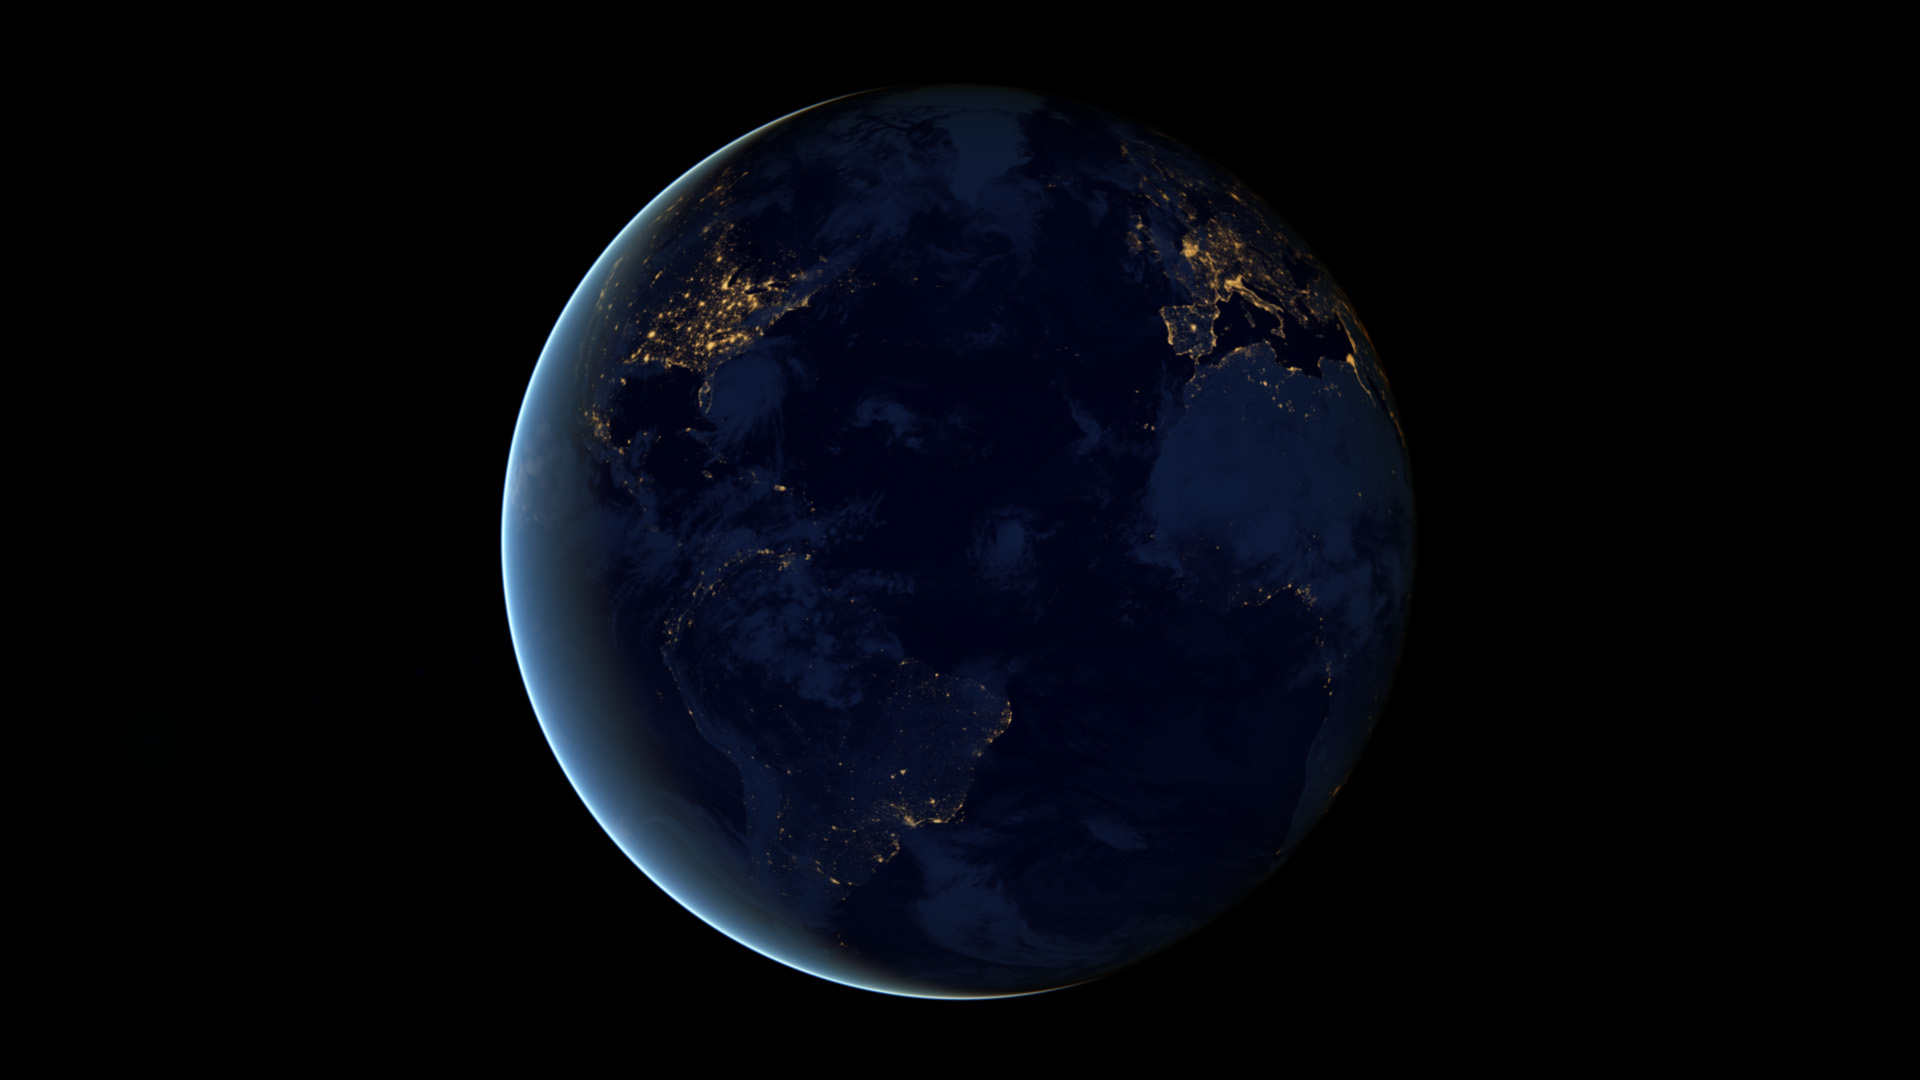 http://eoimages.gsfc.nasa.gov/images/imagerecords/79000/79803/earth_night_rotate_lrg.jpg